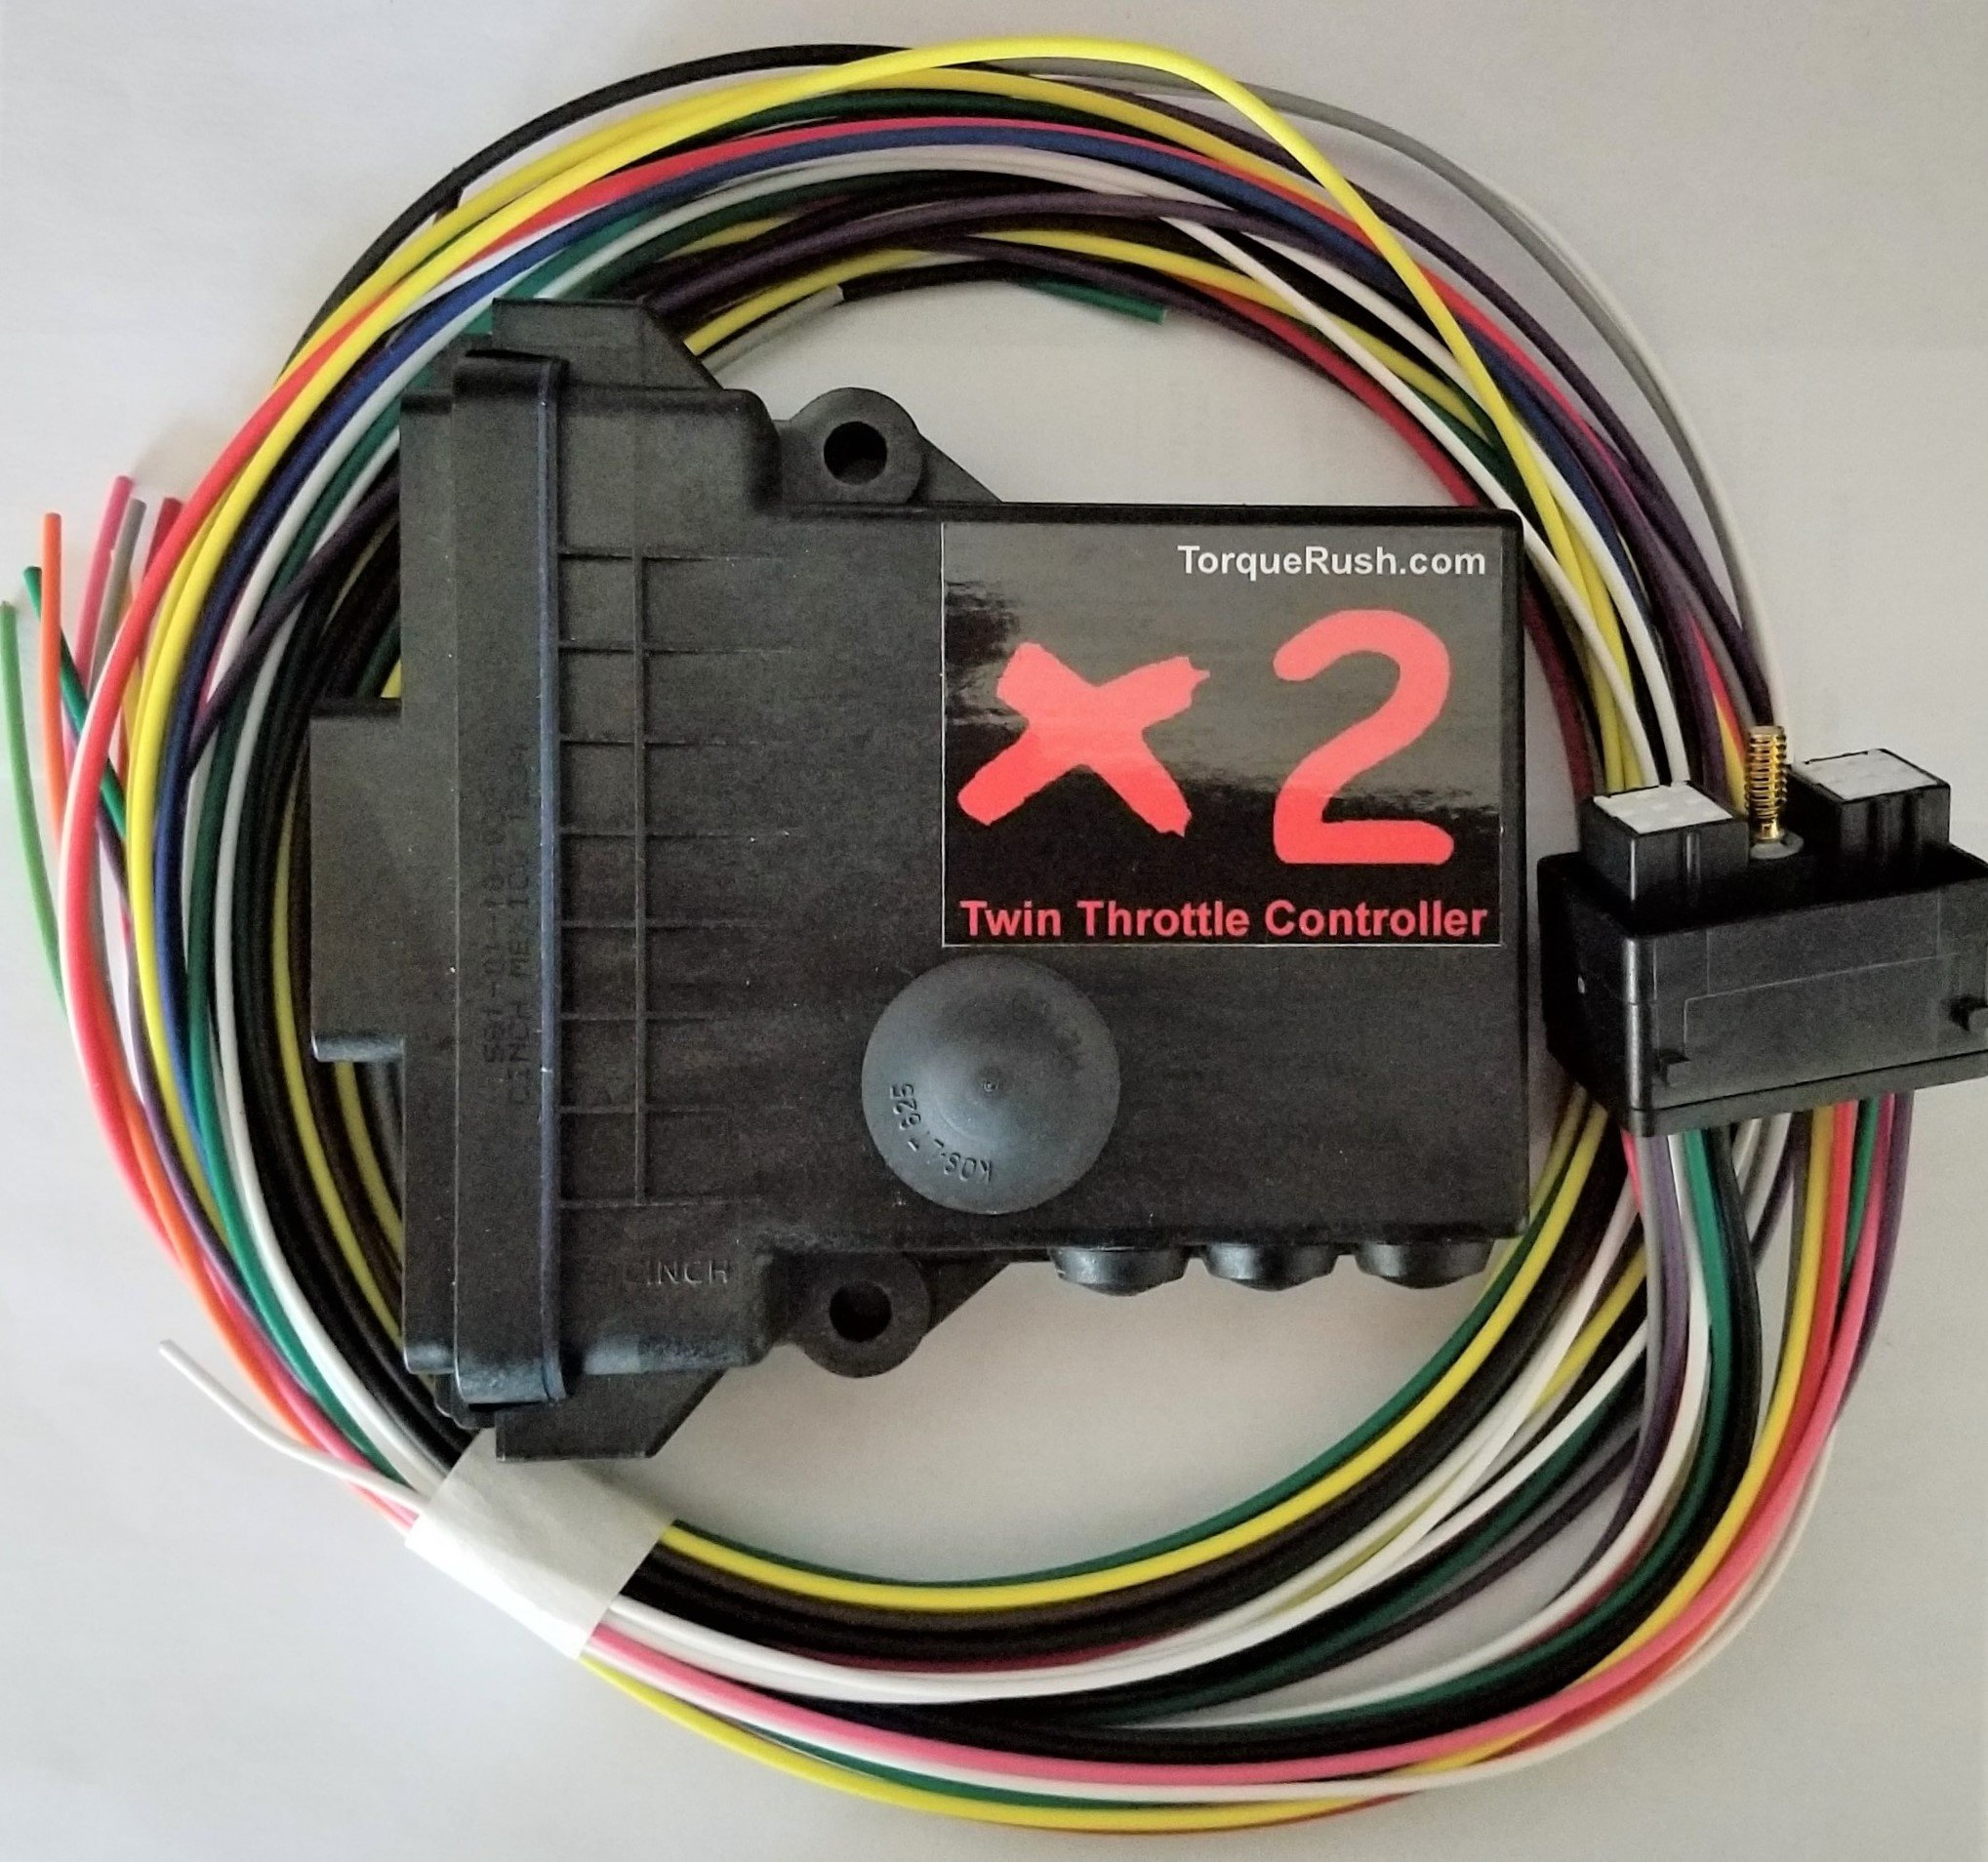 x2 Twin Throttle Controller